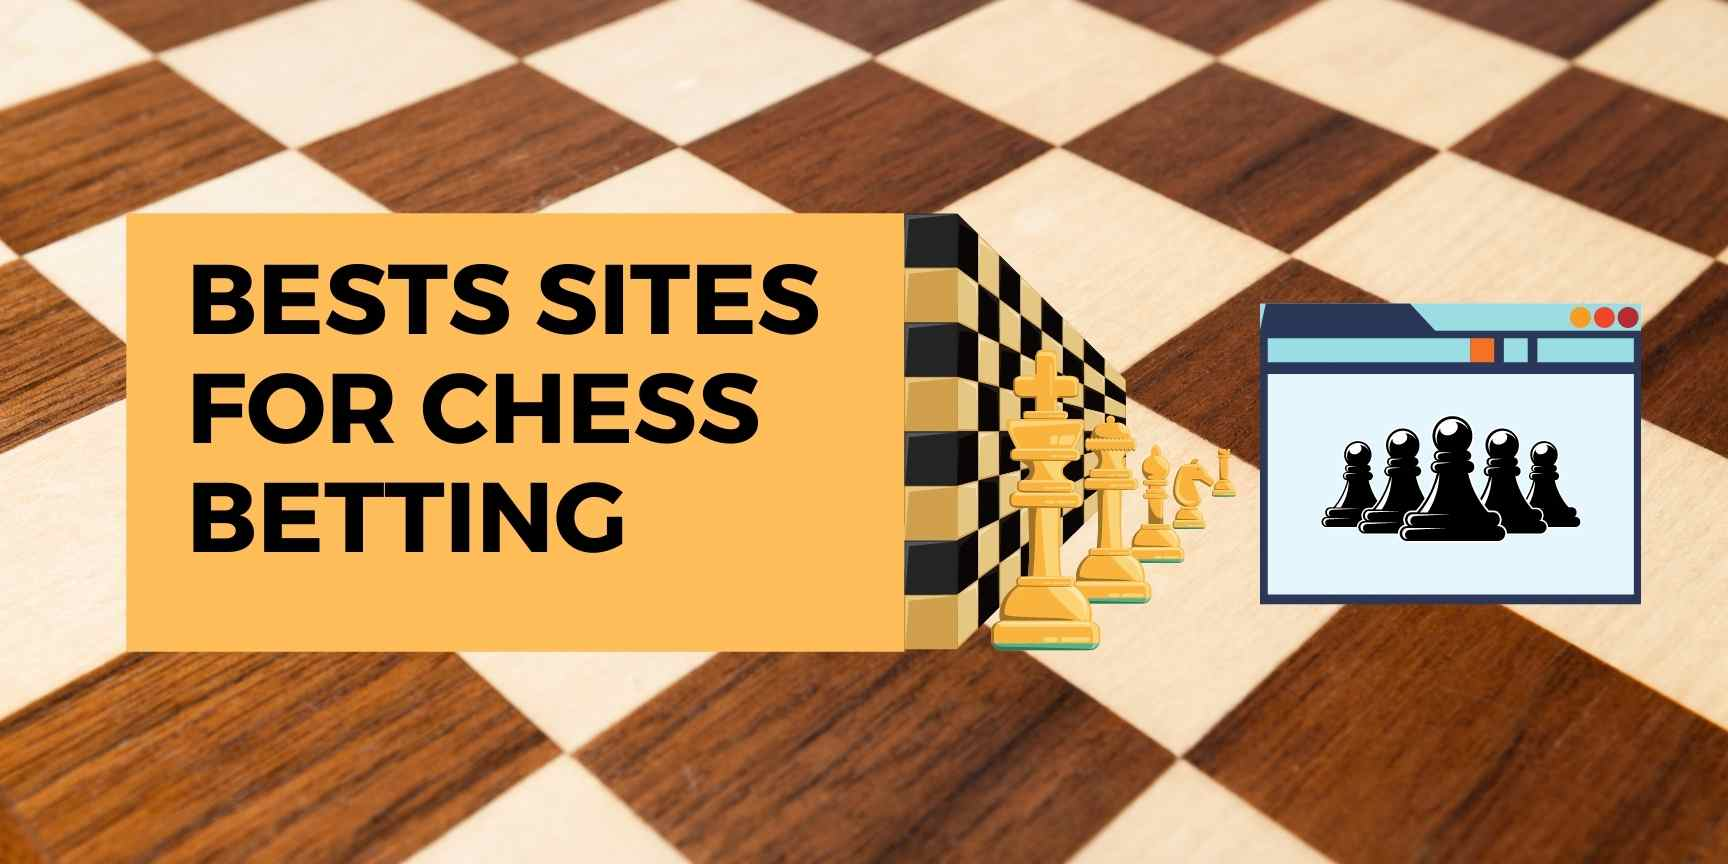 Which sites are the bests for chess betting? post thumbnail image